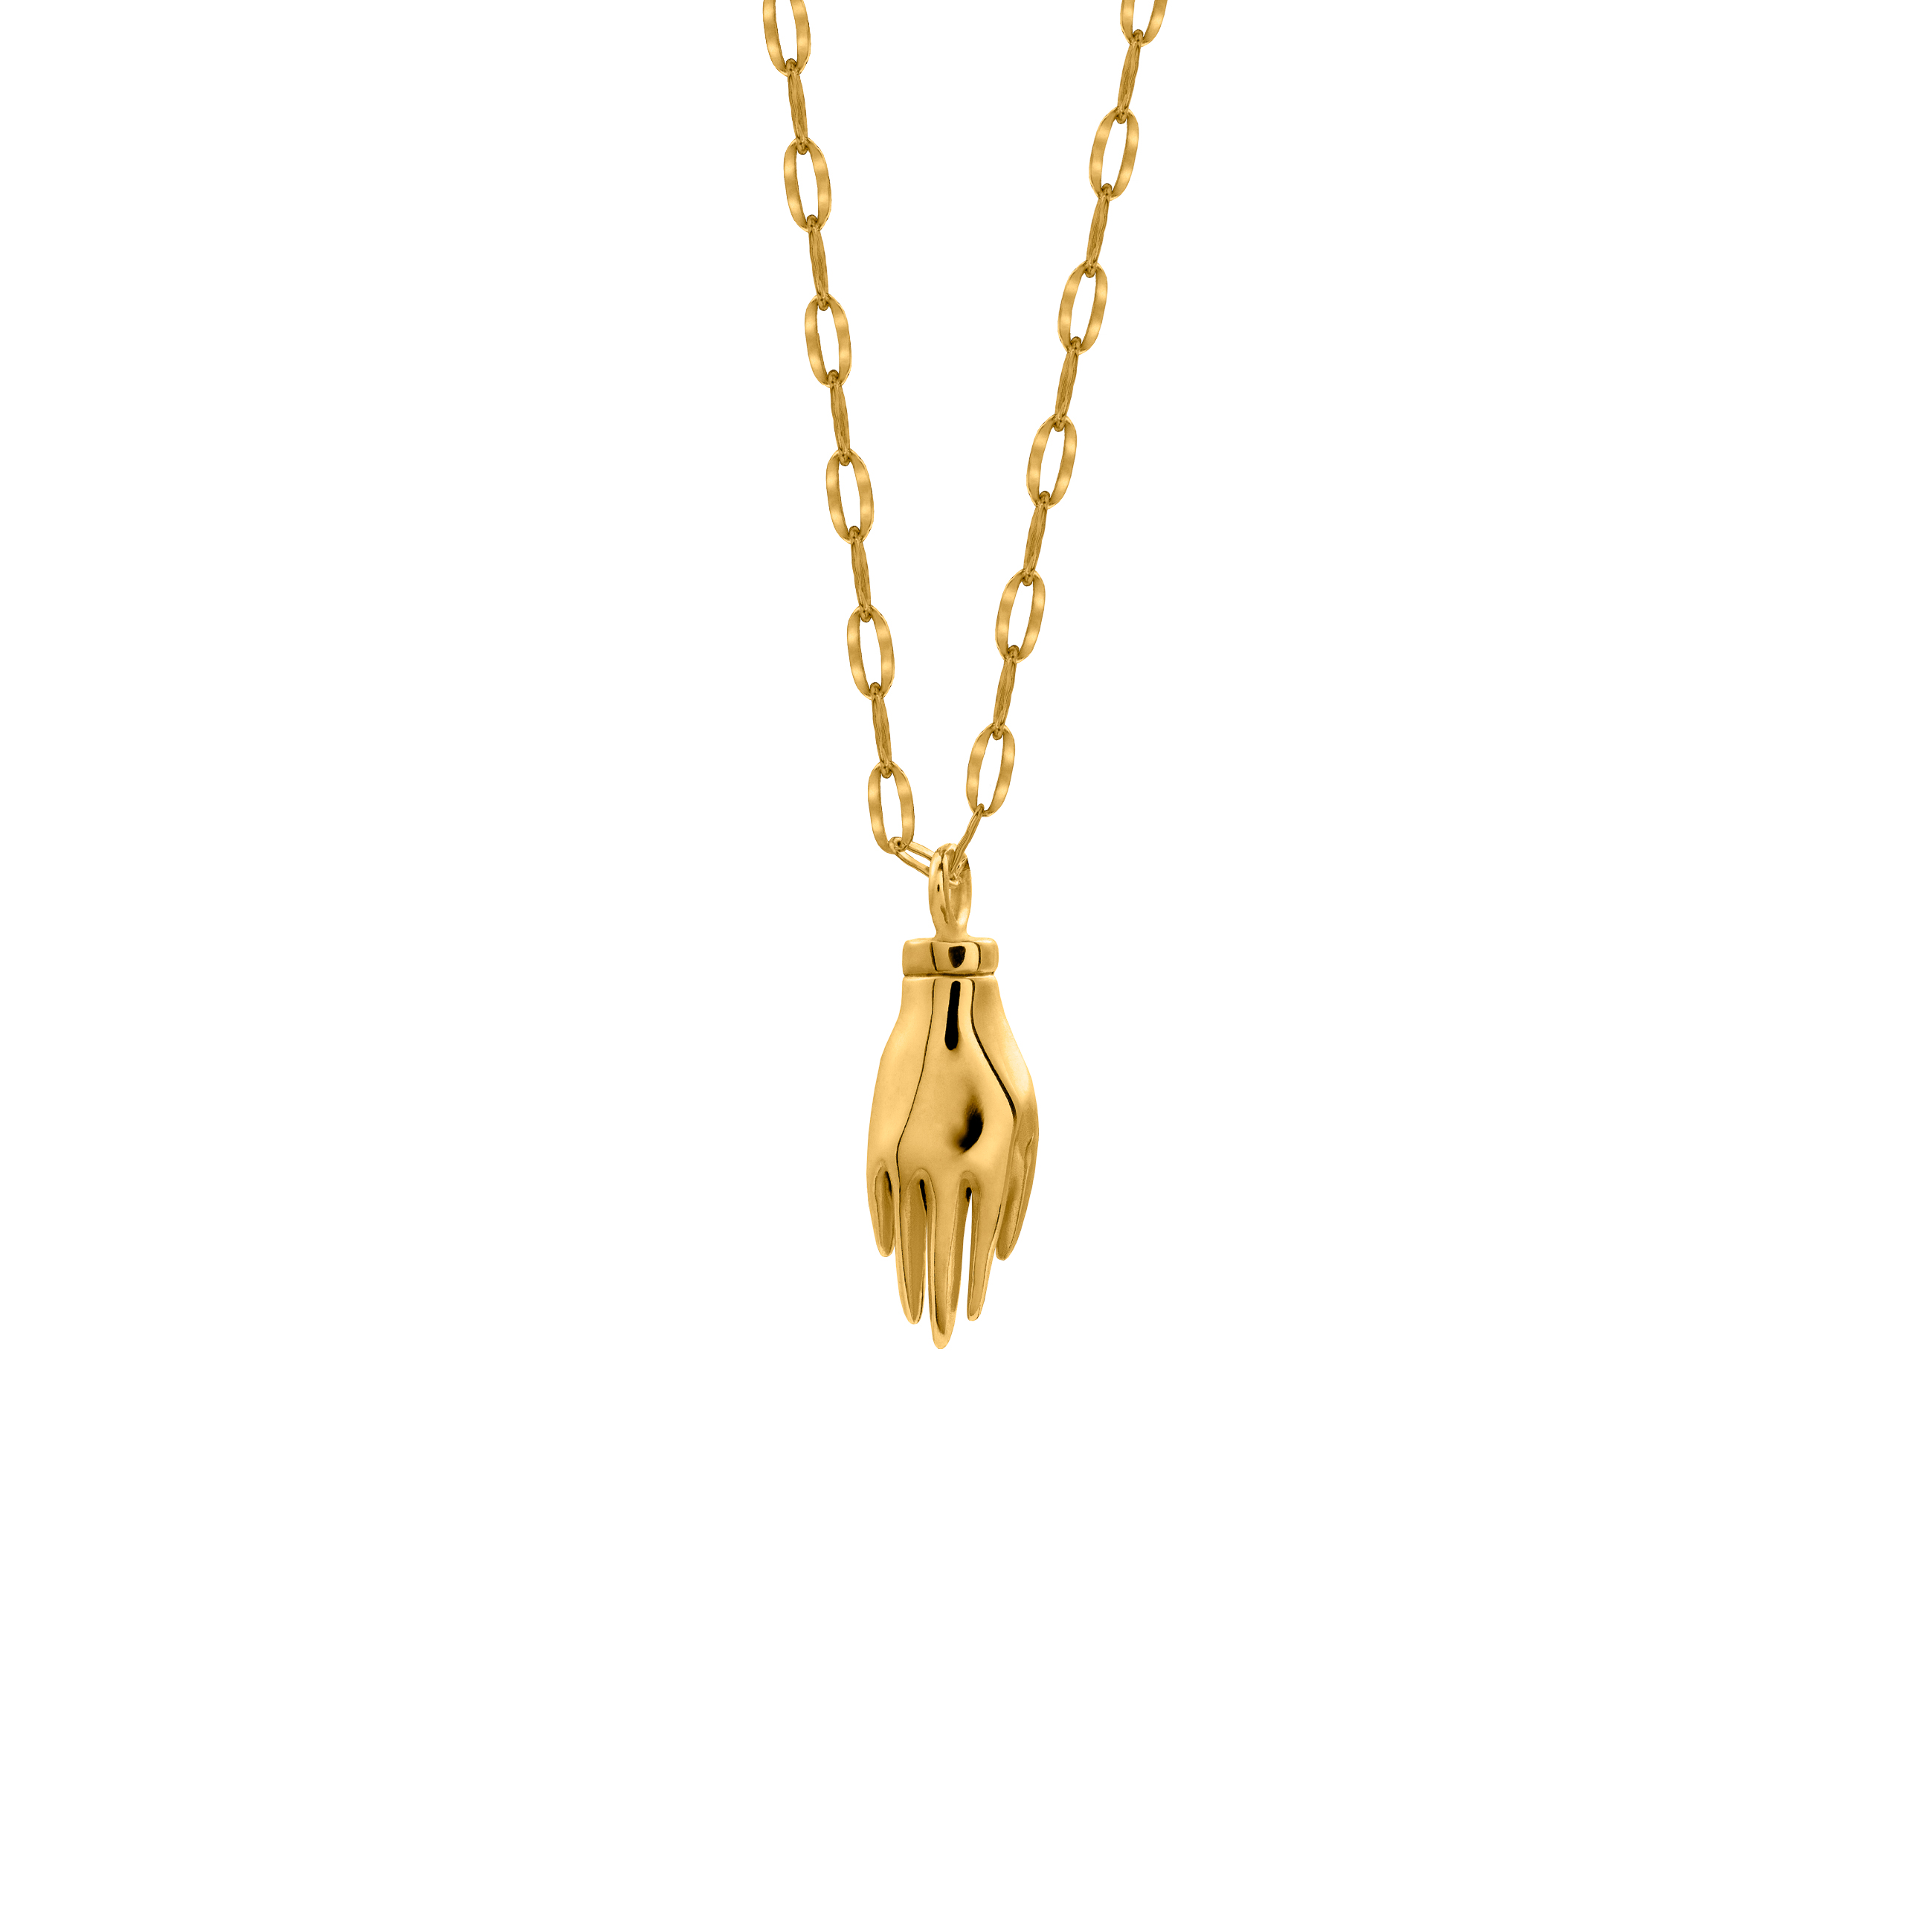 Hand Necklace 3D Gold